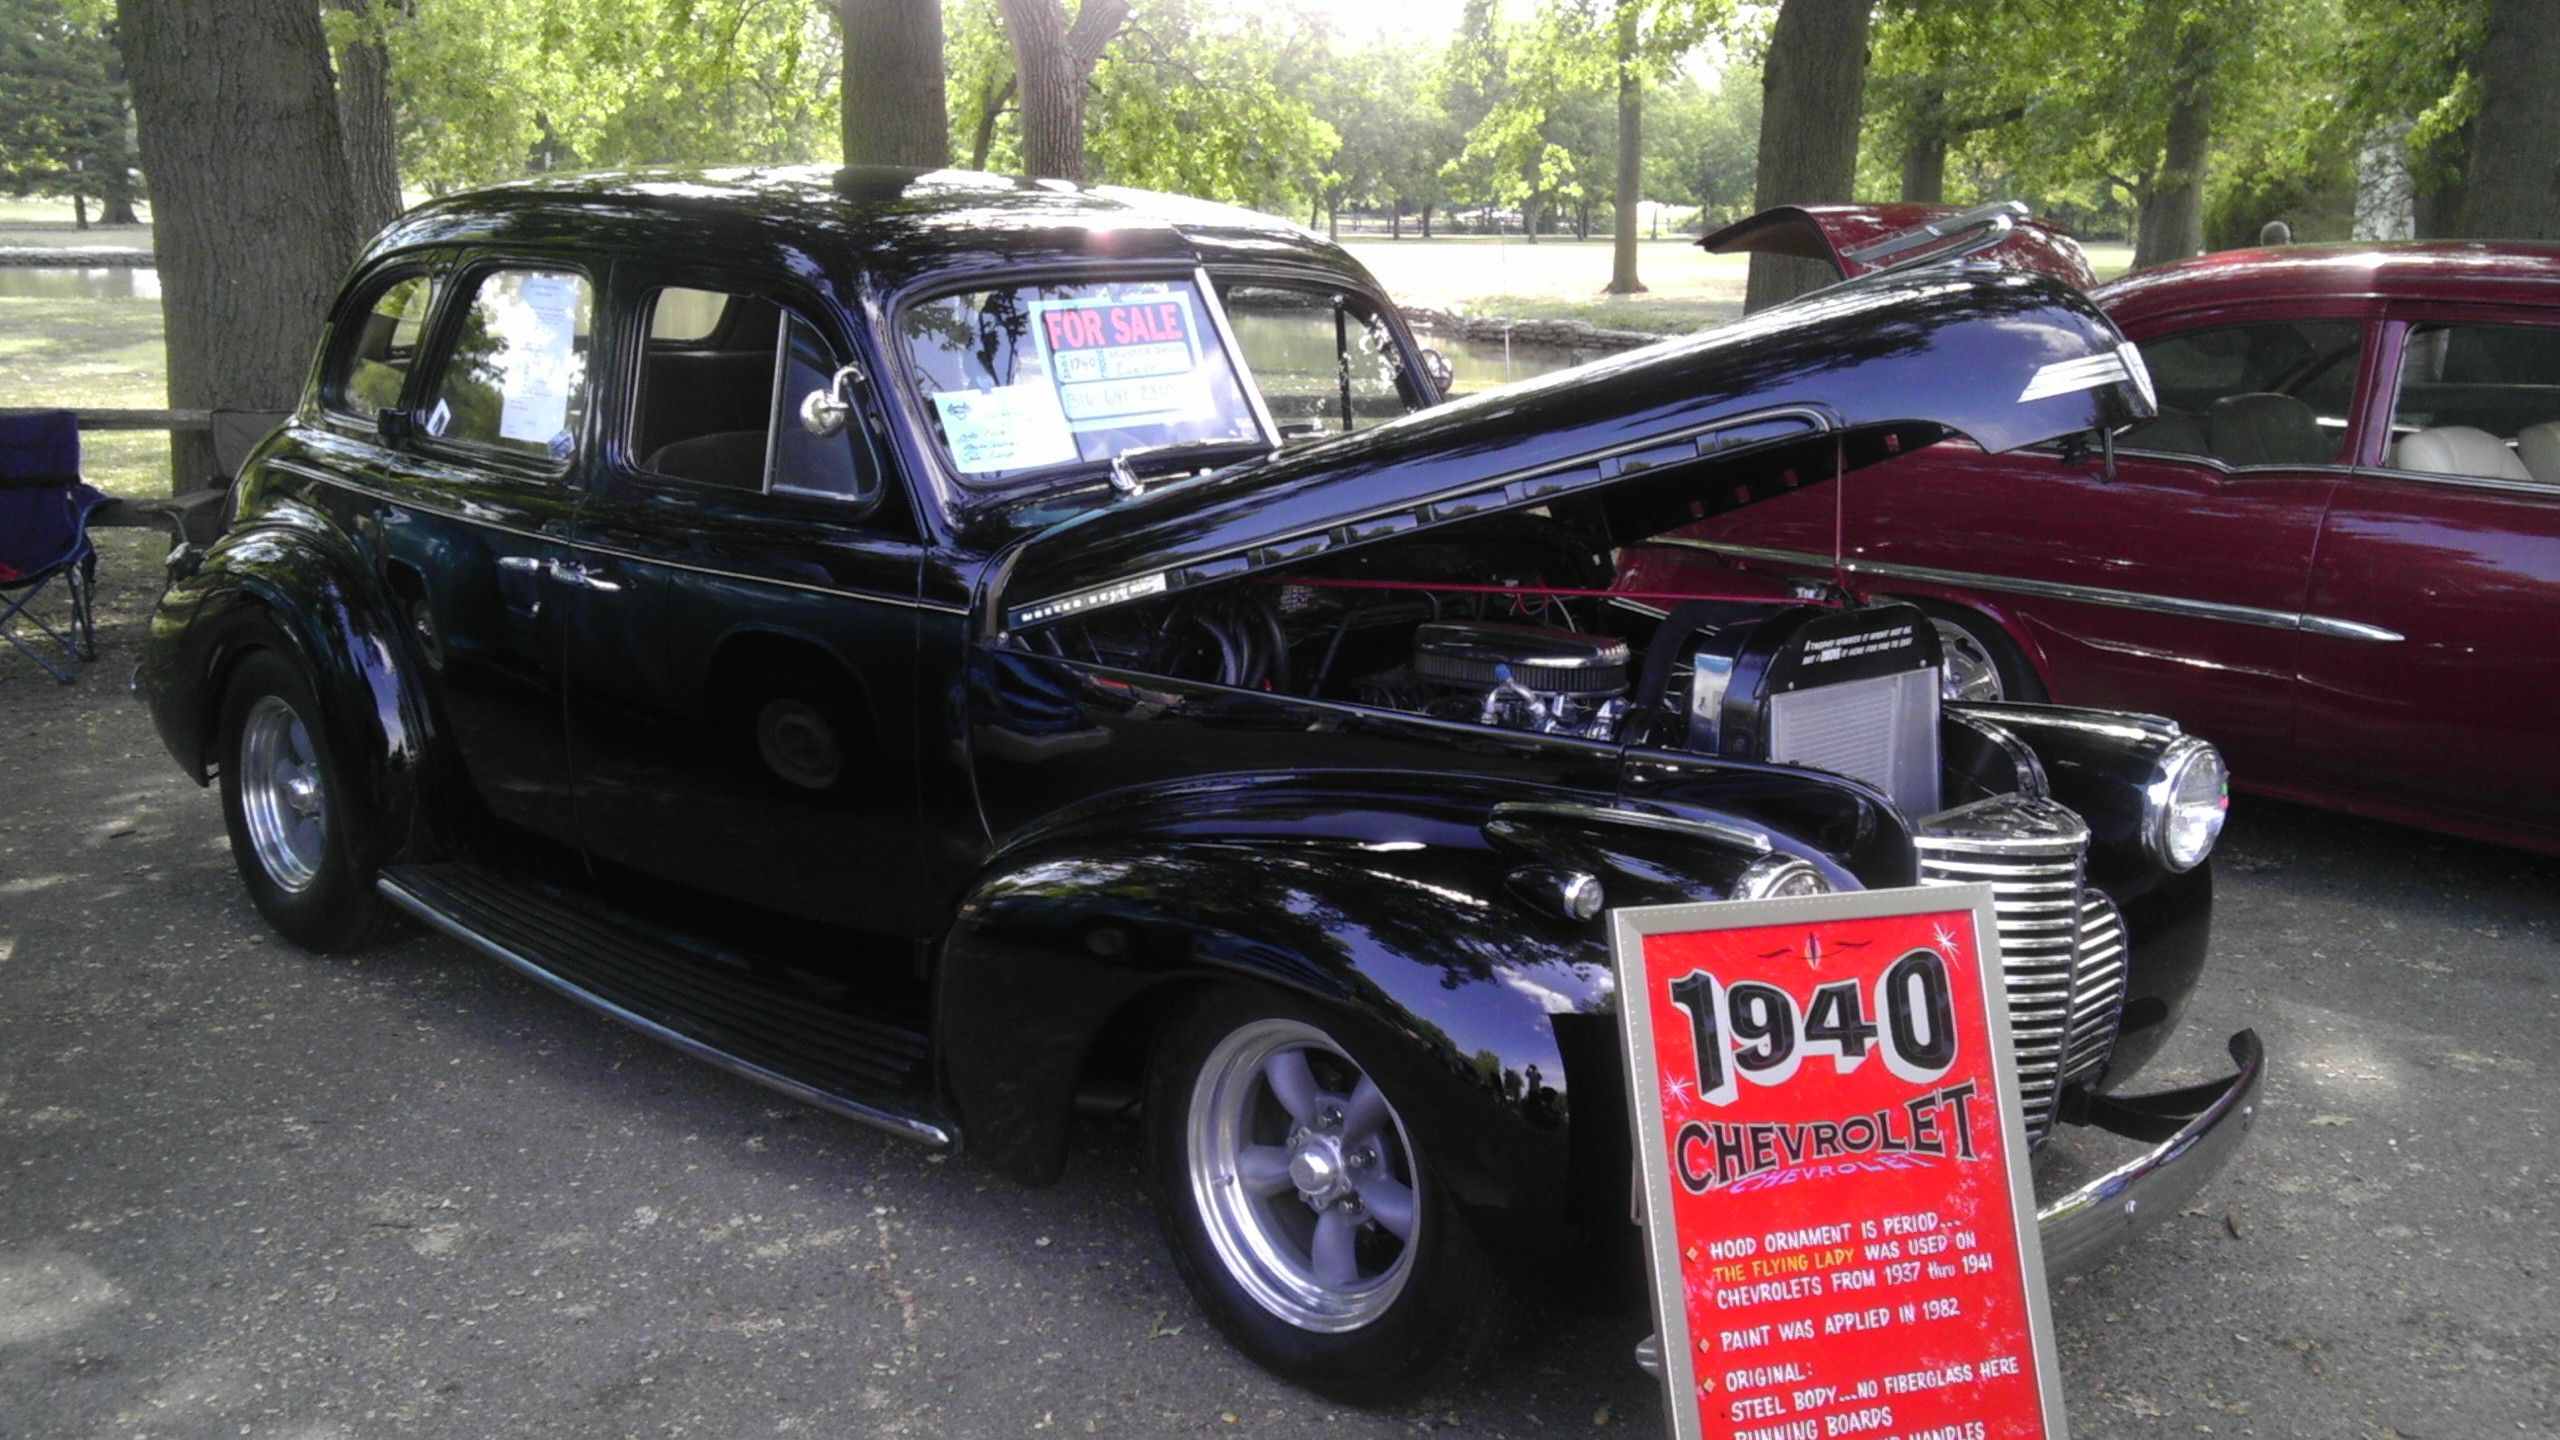 1940 chevrolet 4 door sedan street rod for sale at www for 1940 chevrolet 4 door sedan